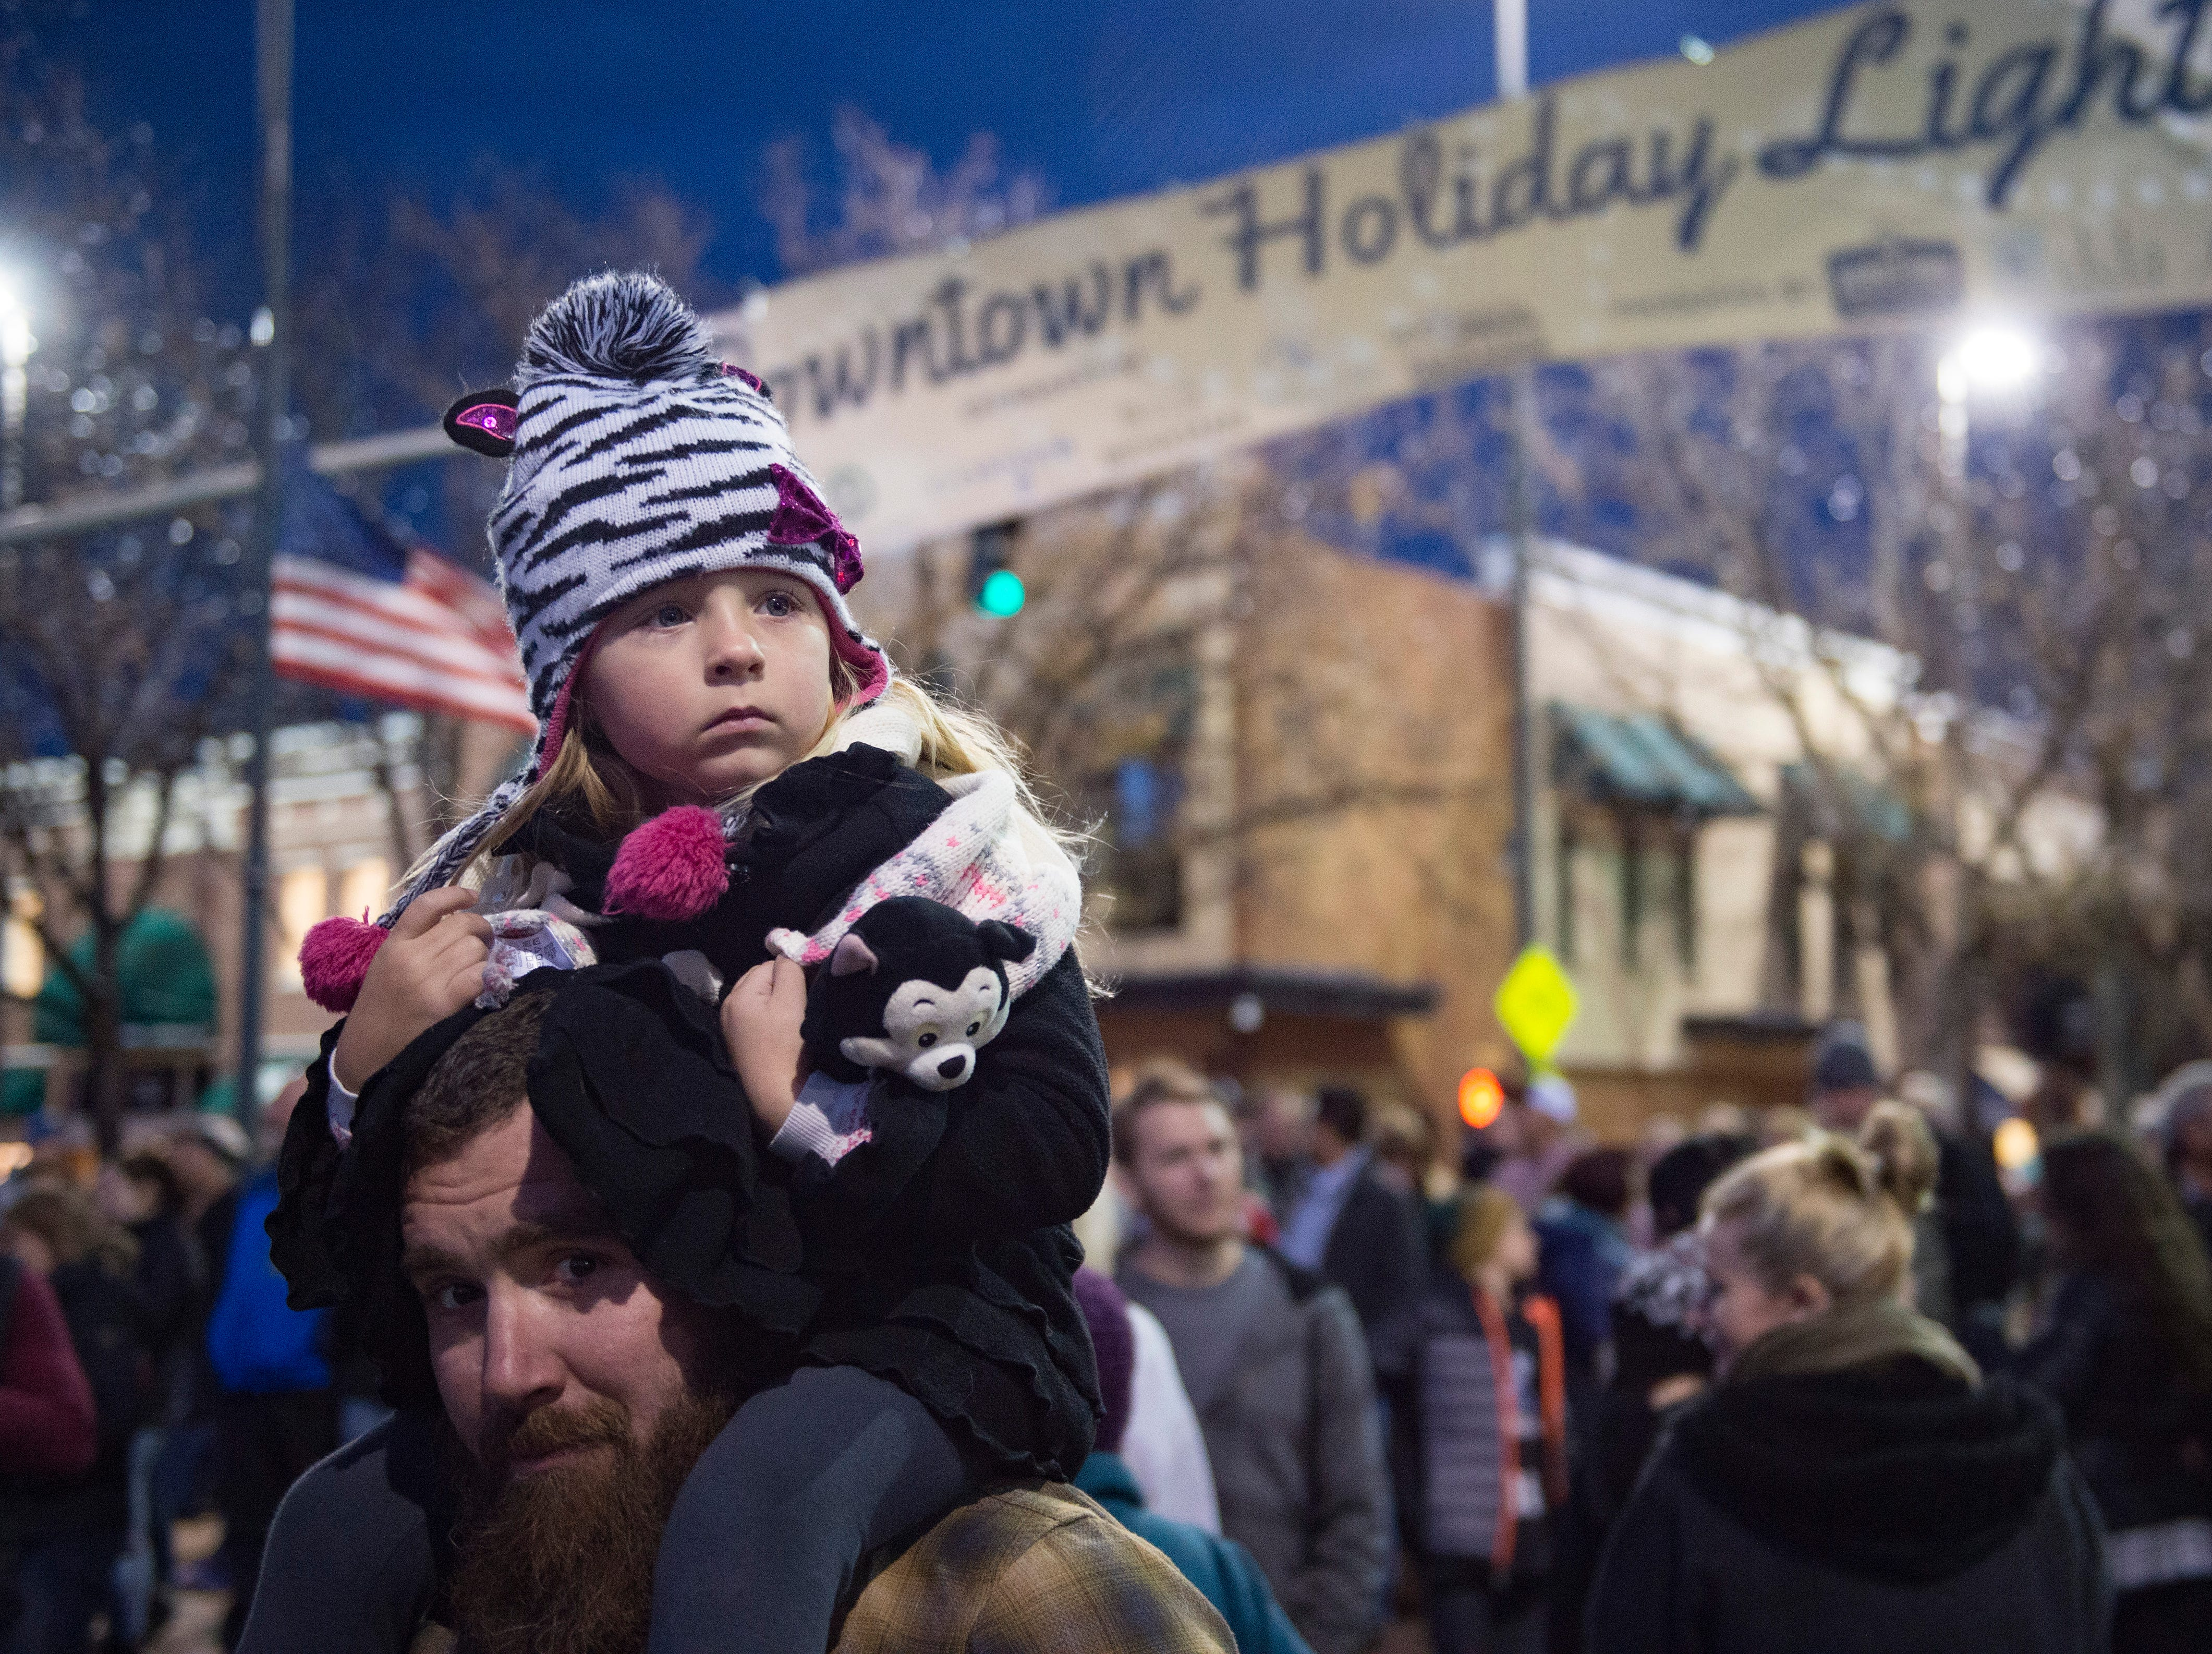 Evie Haring sits on her father, Brian's, shoulders before the holiday lights are turned on in Old Town on Friday, November 2, 2018. The lights will illuminate Old Town until Feb. 14.